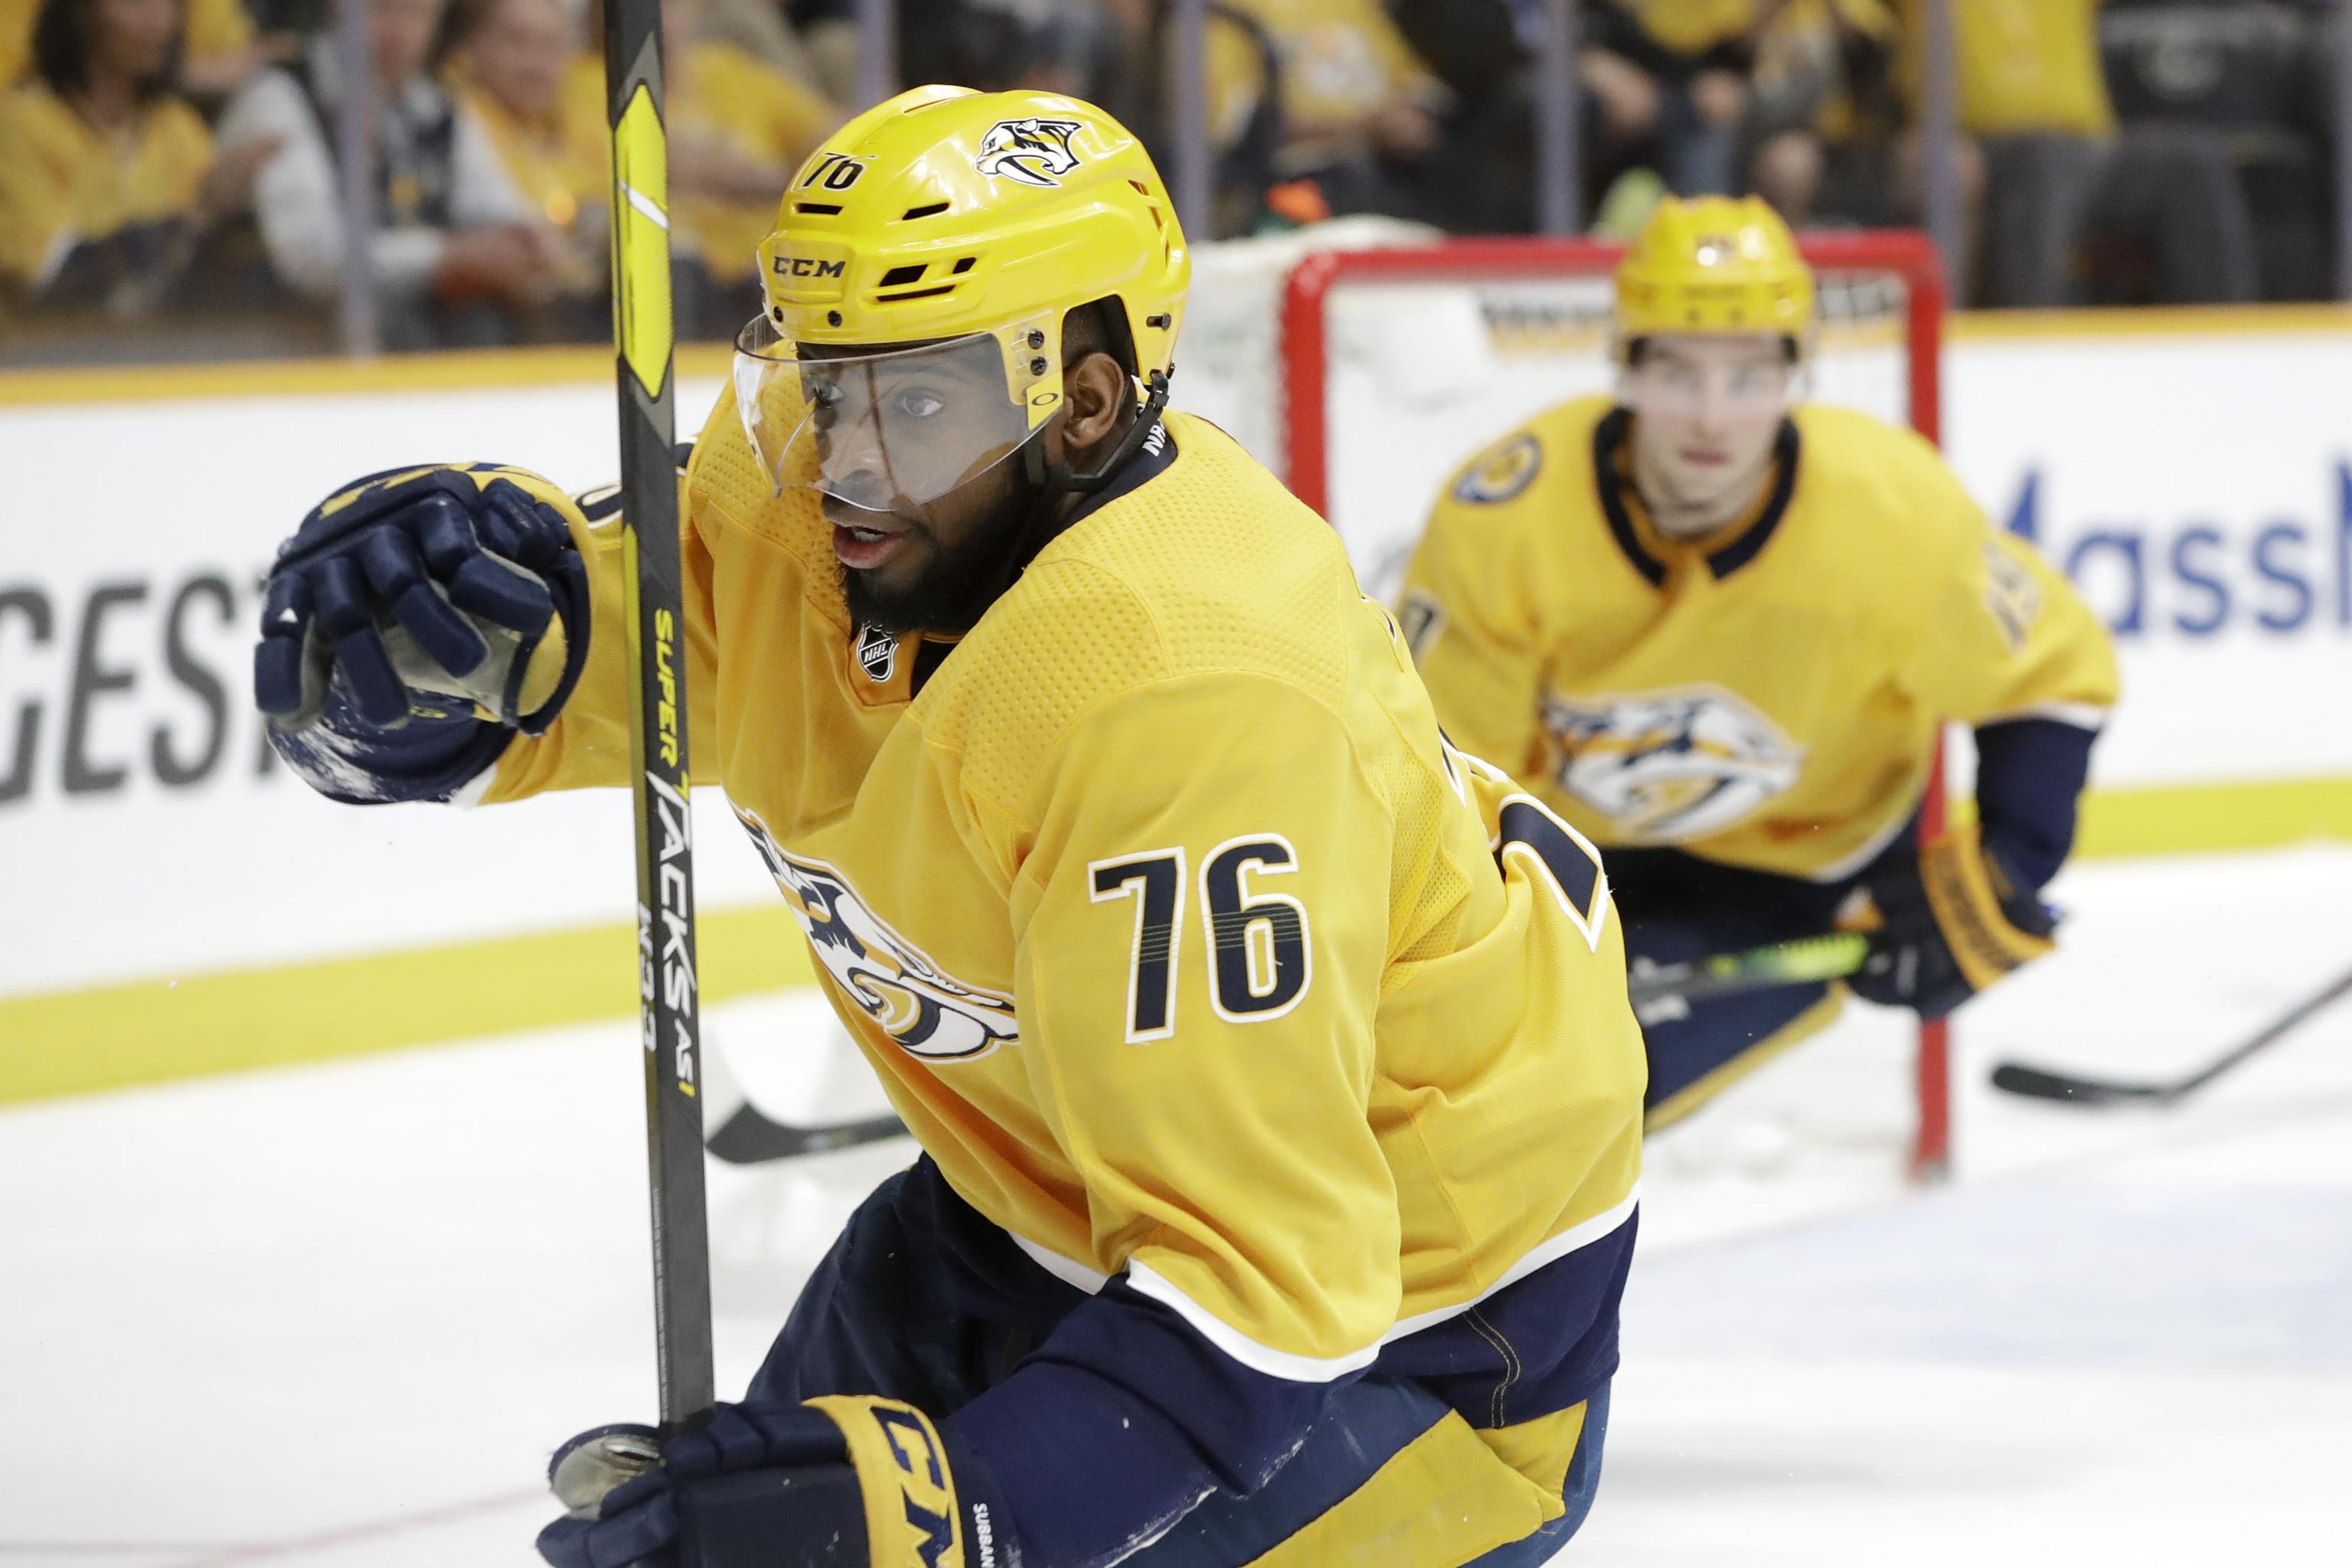 separation shoes b2d32 8a778 PK Subban Traded to Devils from Predators for Steven Santini ...